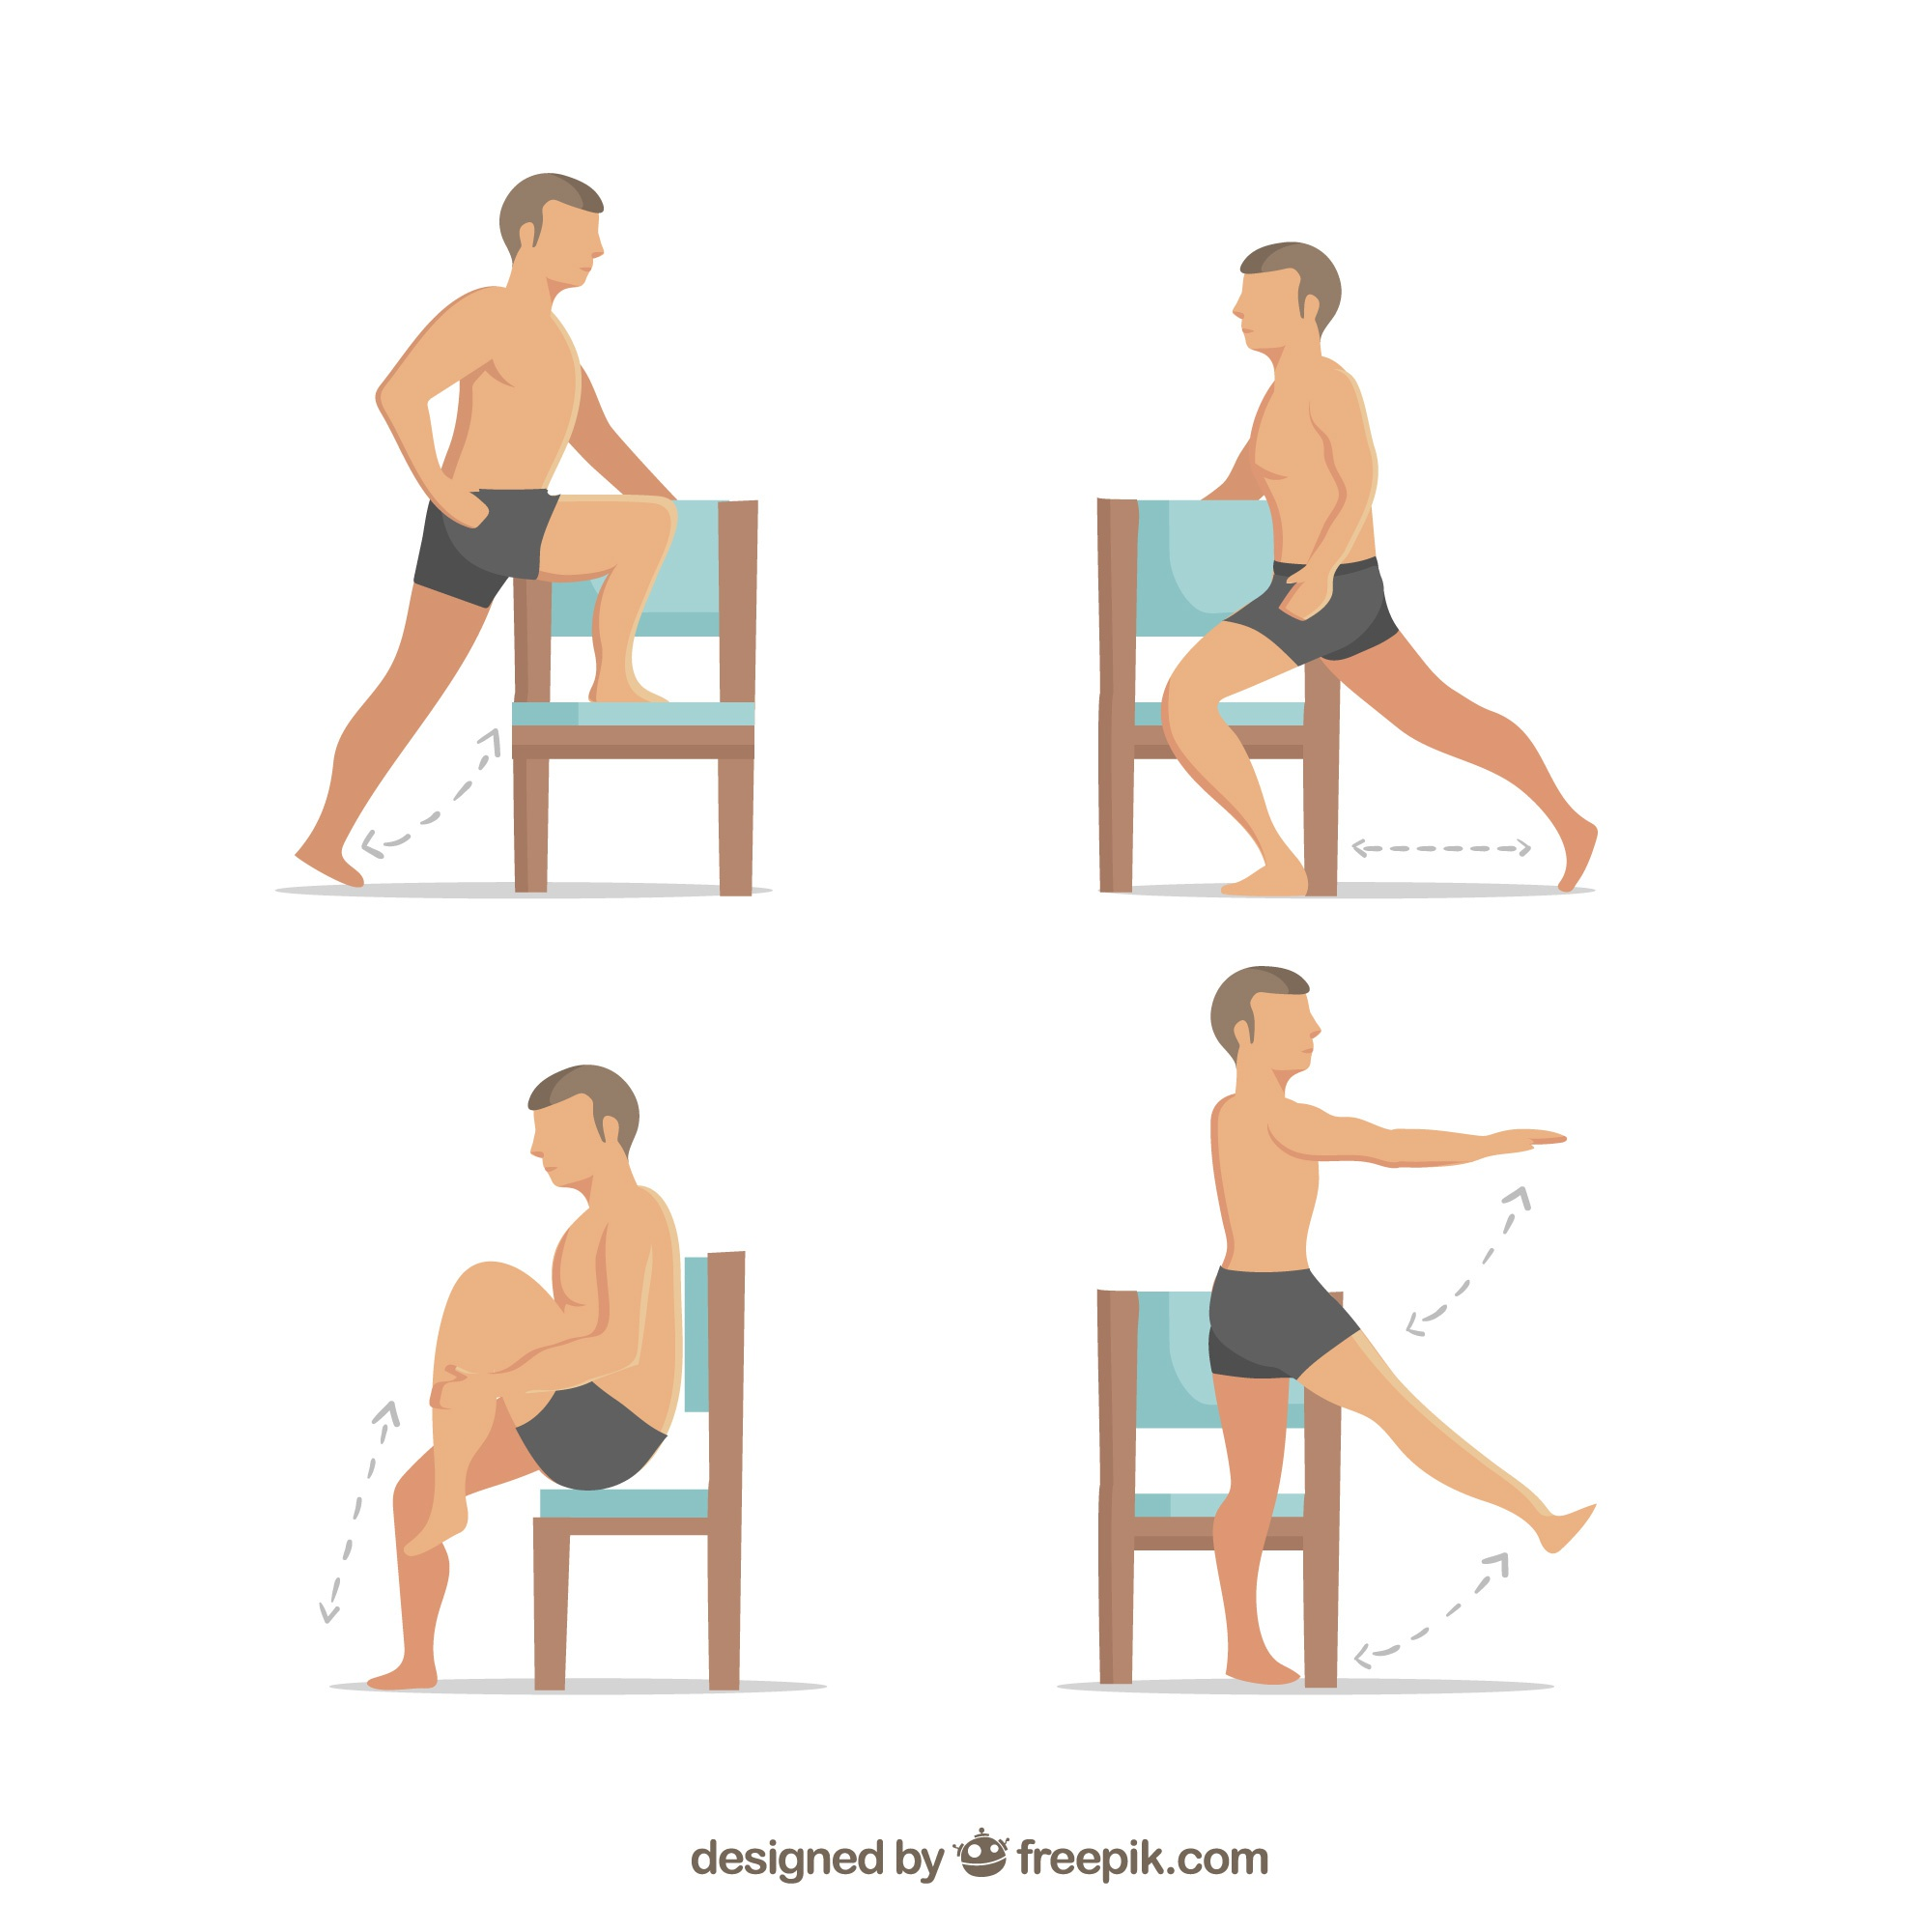 Rehabilitation exercises with a chair